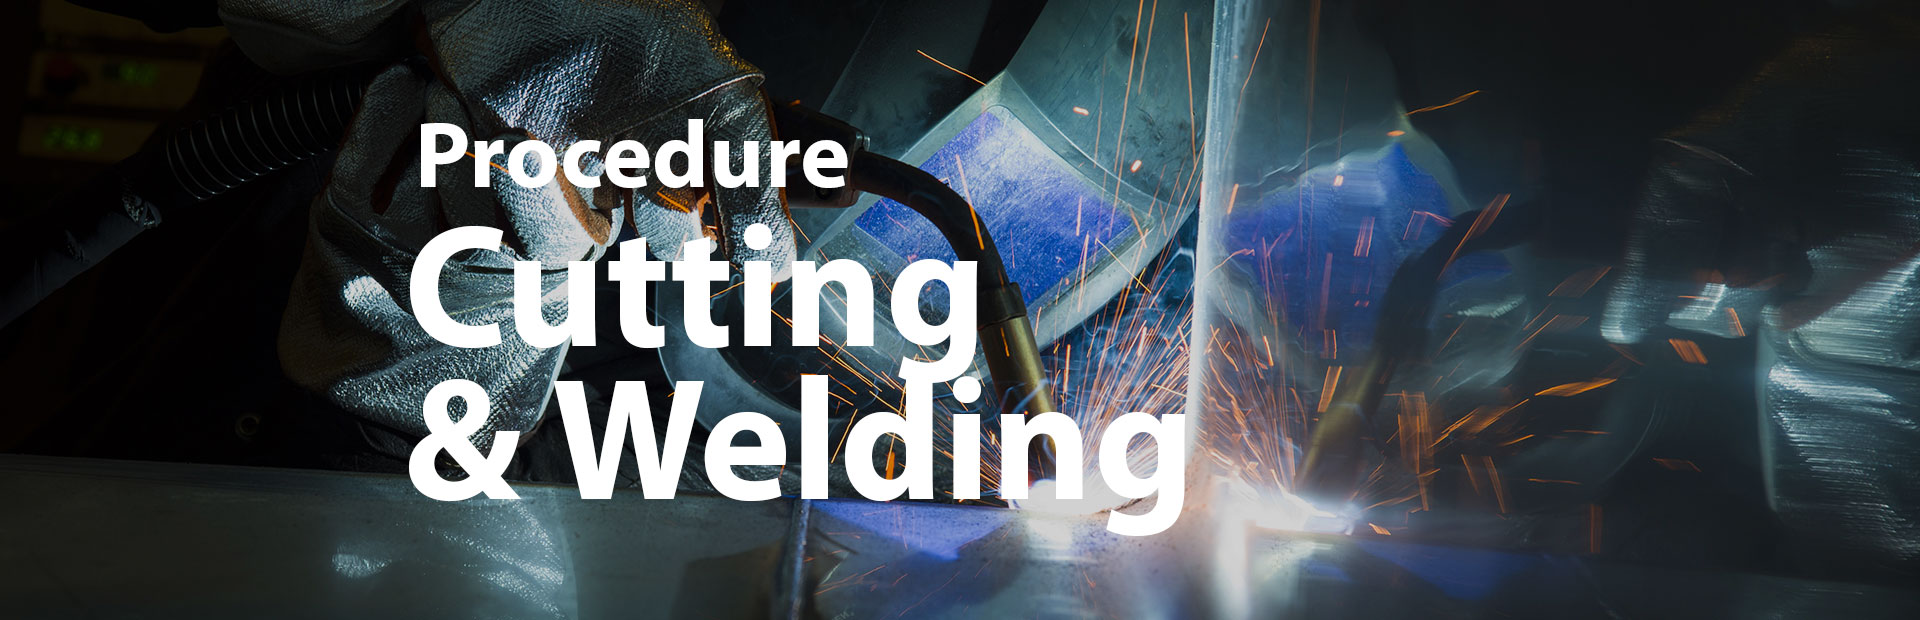 Oxygen production for cutting and welding